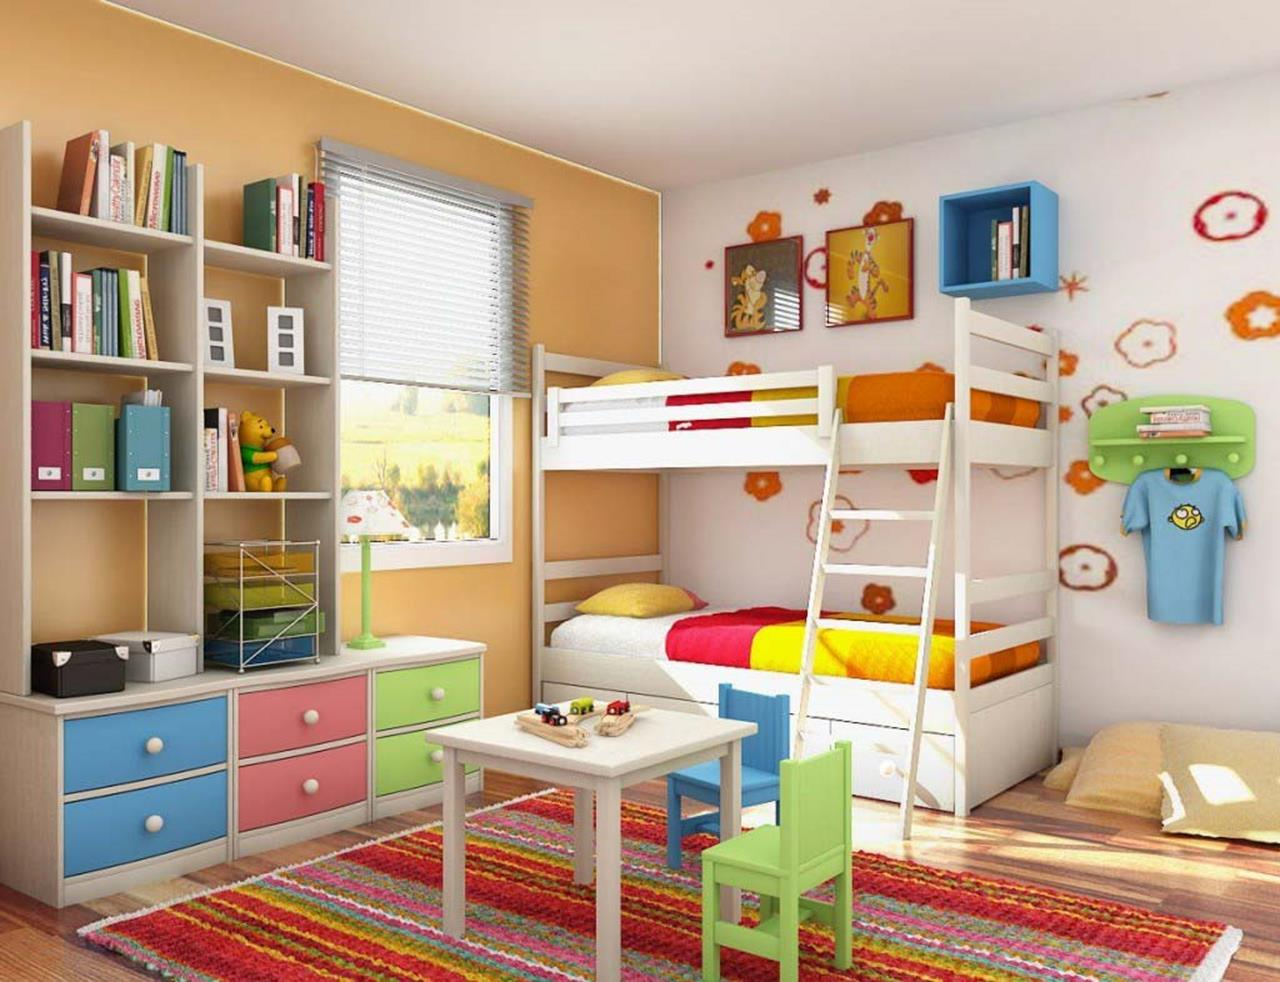 Color Full Kids Room Decorating Ideas On A Budget 9